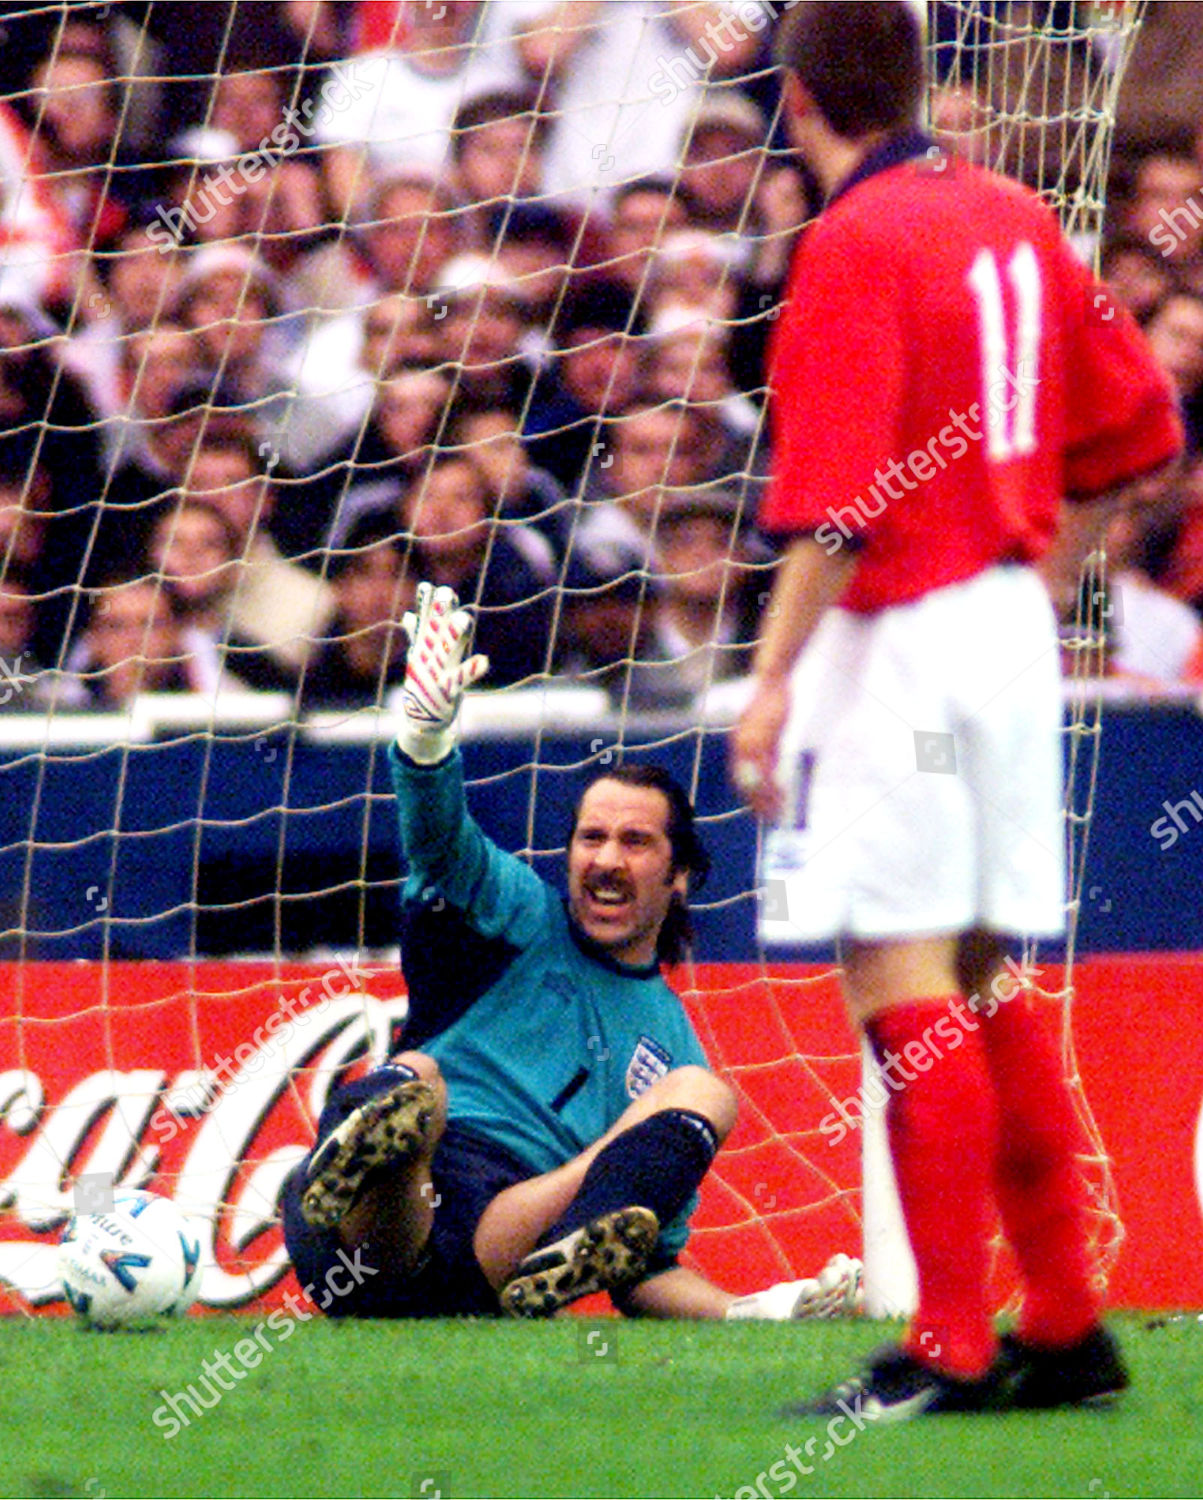 Englands David Seaman Sits On Ground After Editorial Stock